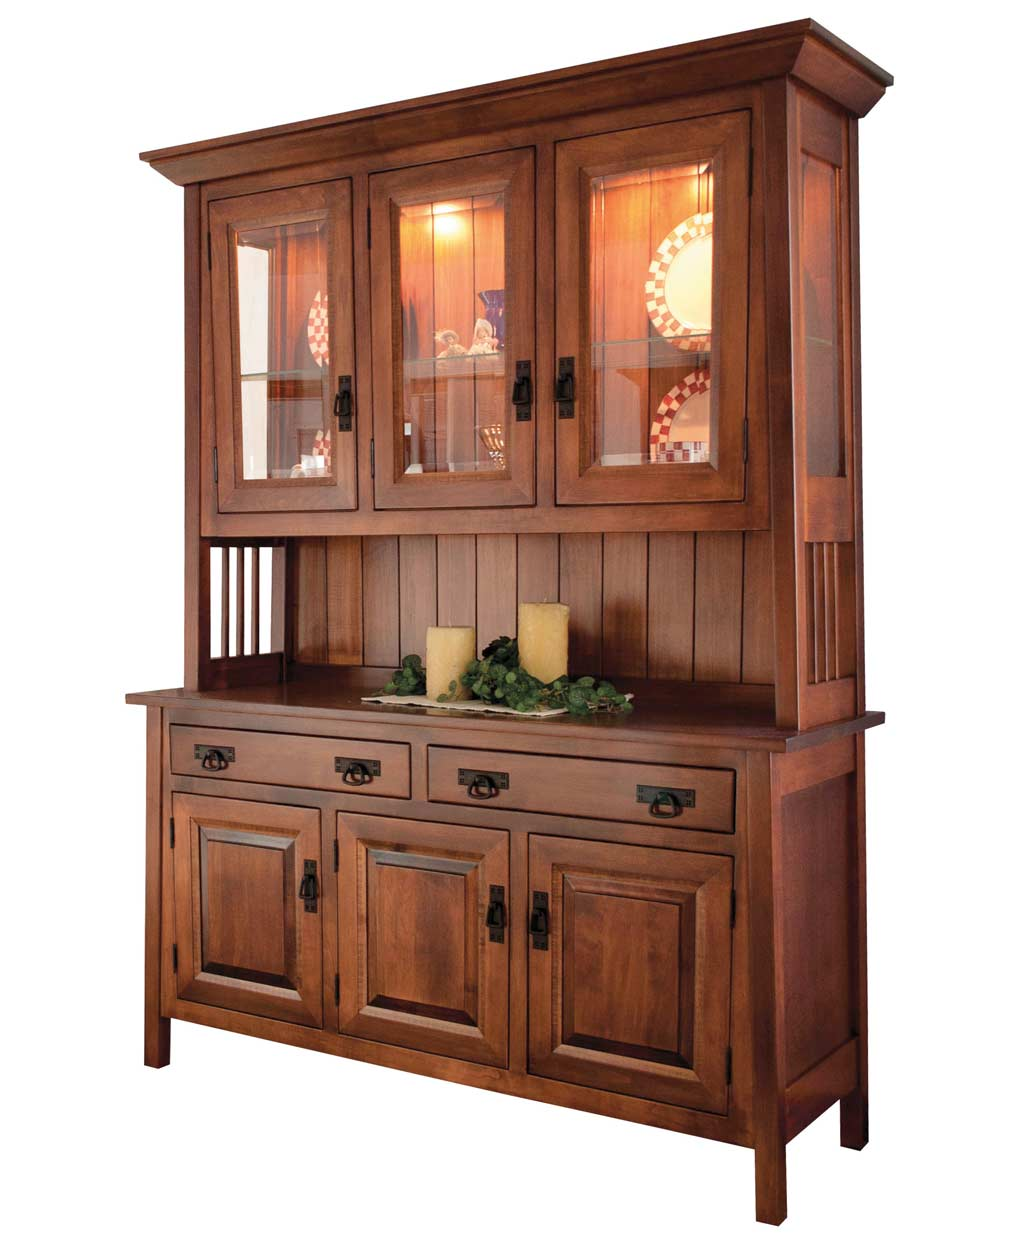 Superbe Ouray Hutch